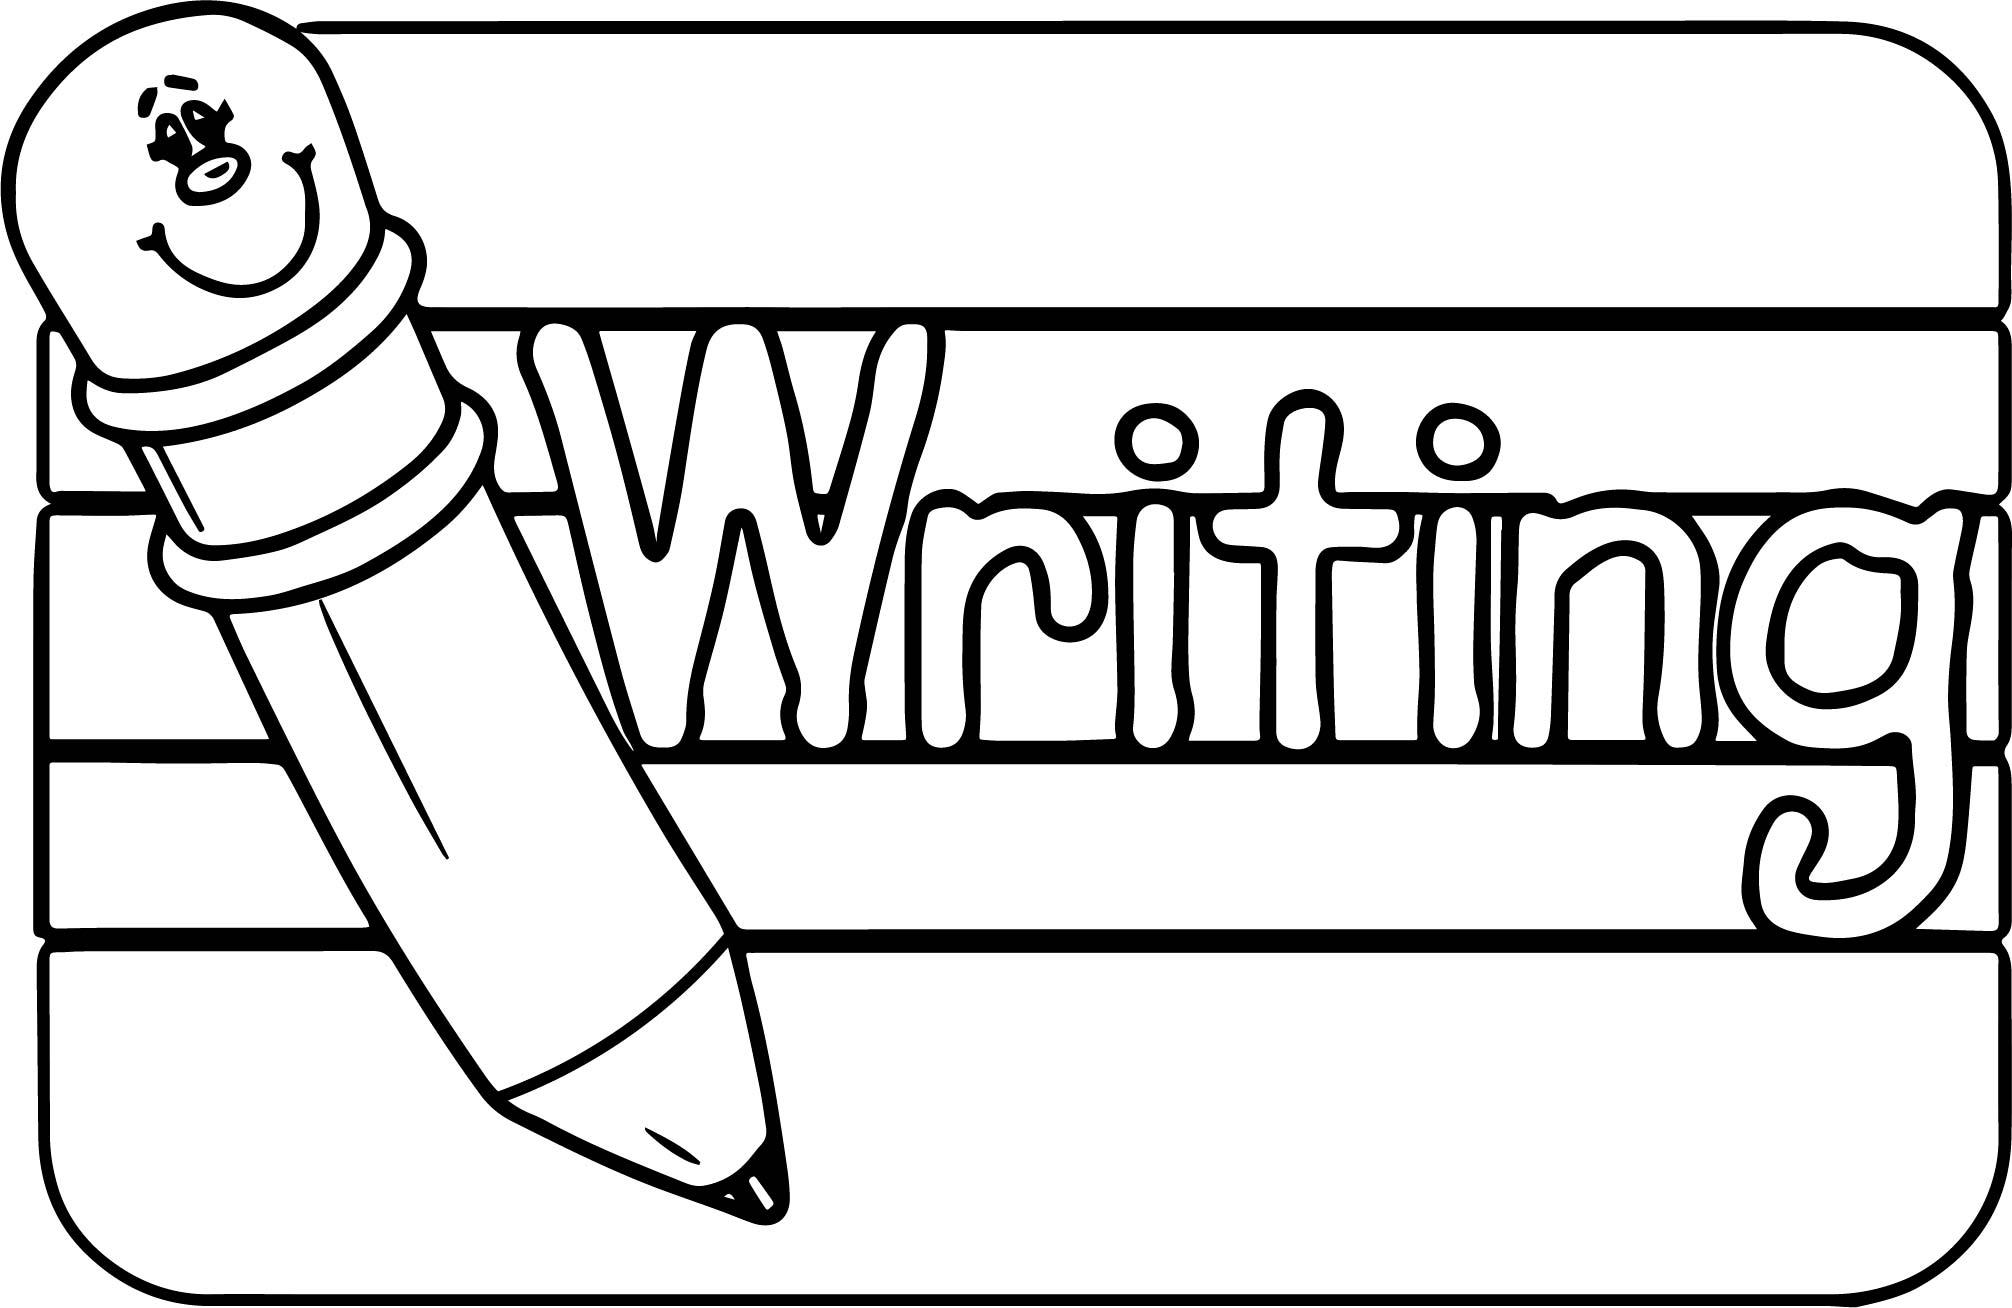 Abc Pencil Writing Text Sign Coloring Page | Wecoloringpage